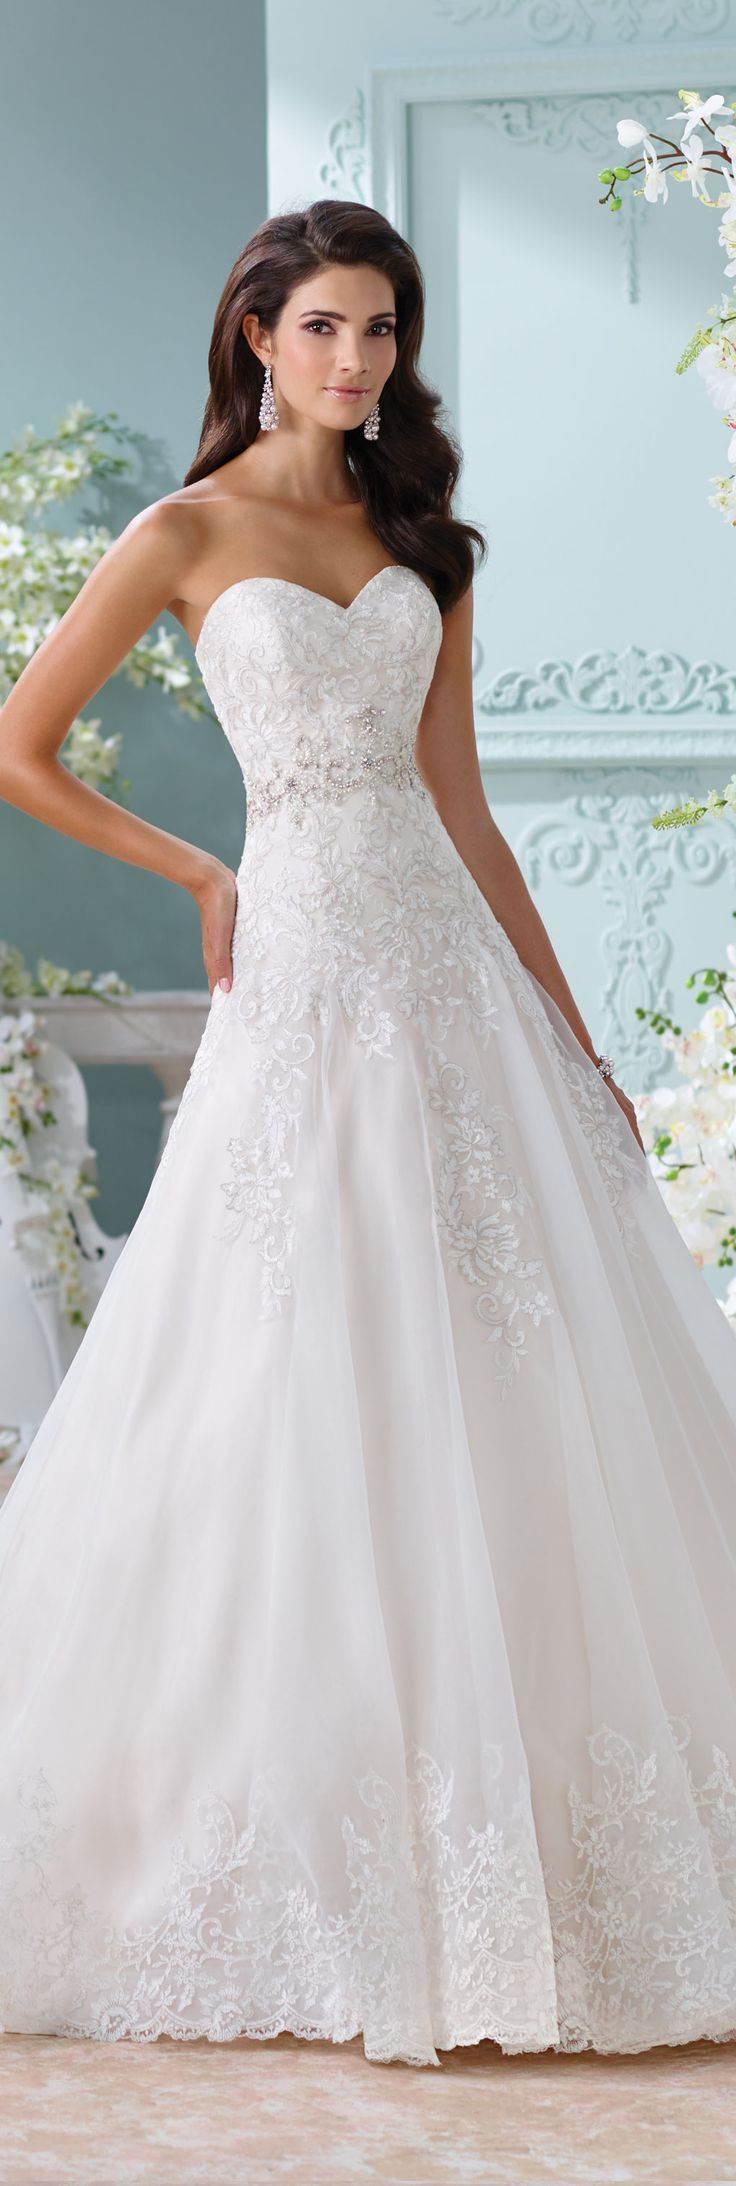 The David Tutera for Mon Cheri Spring 2016 Wedding Gown Collection - Style No. 116210 Laina #laceweddingdresses